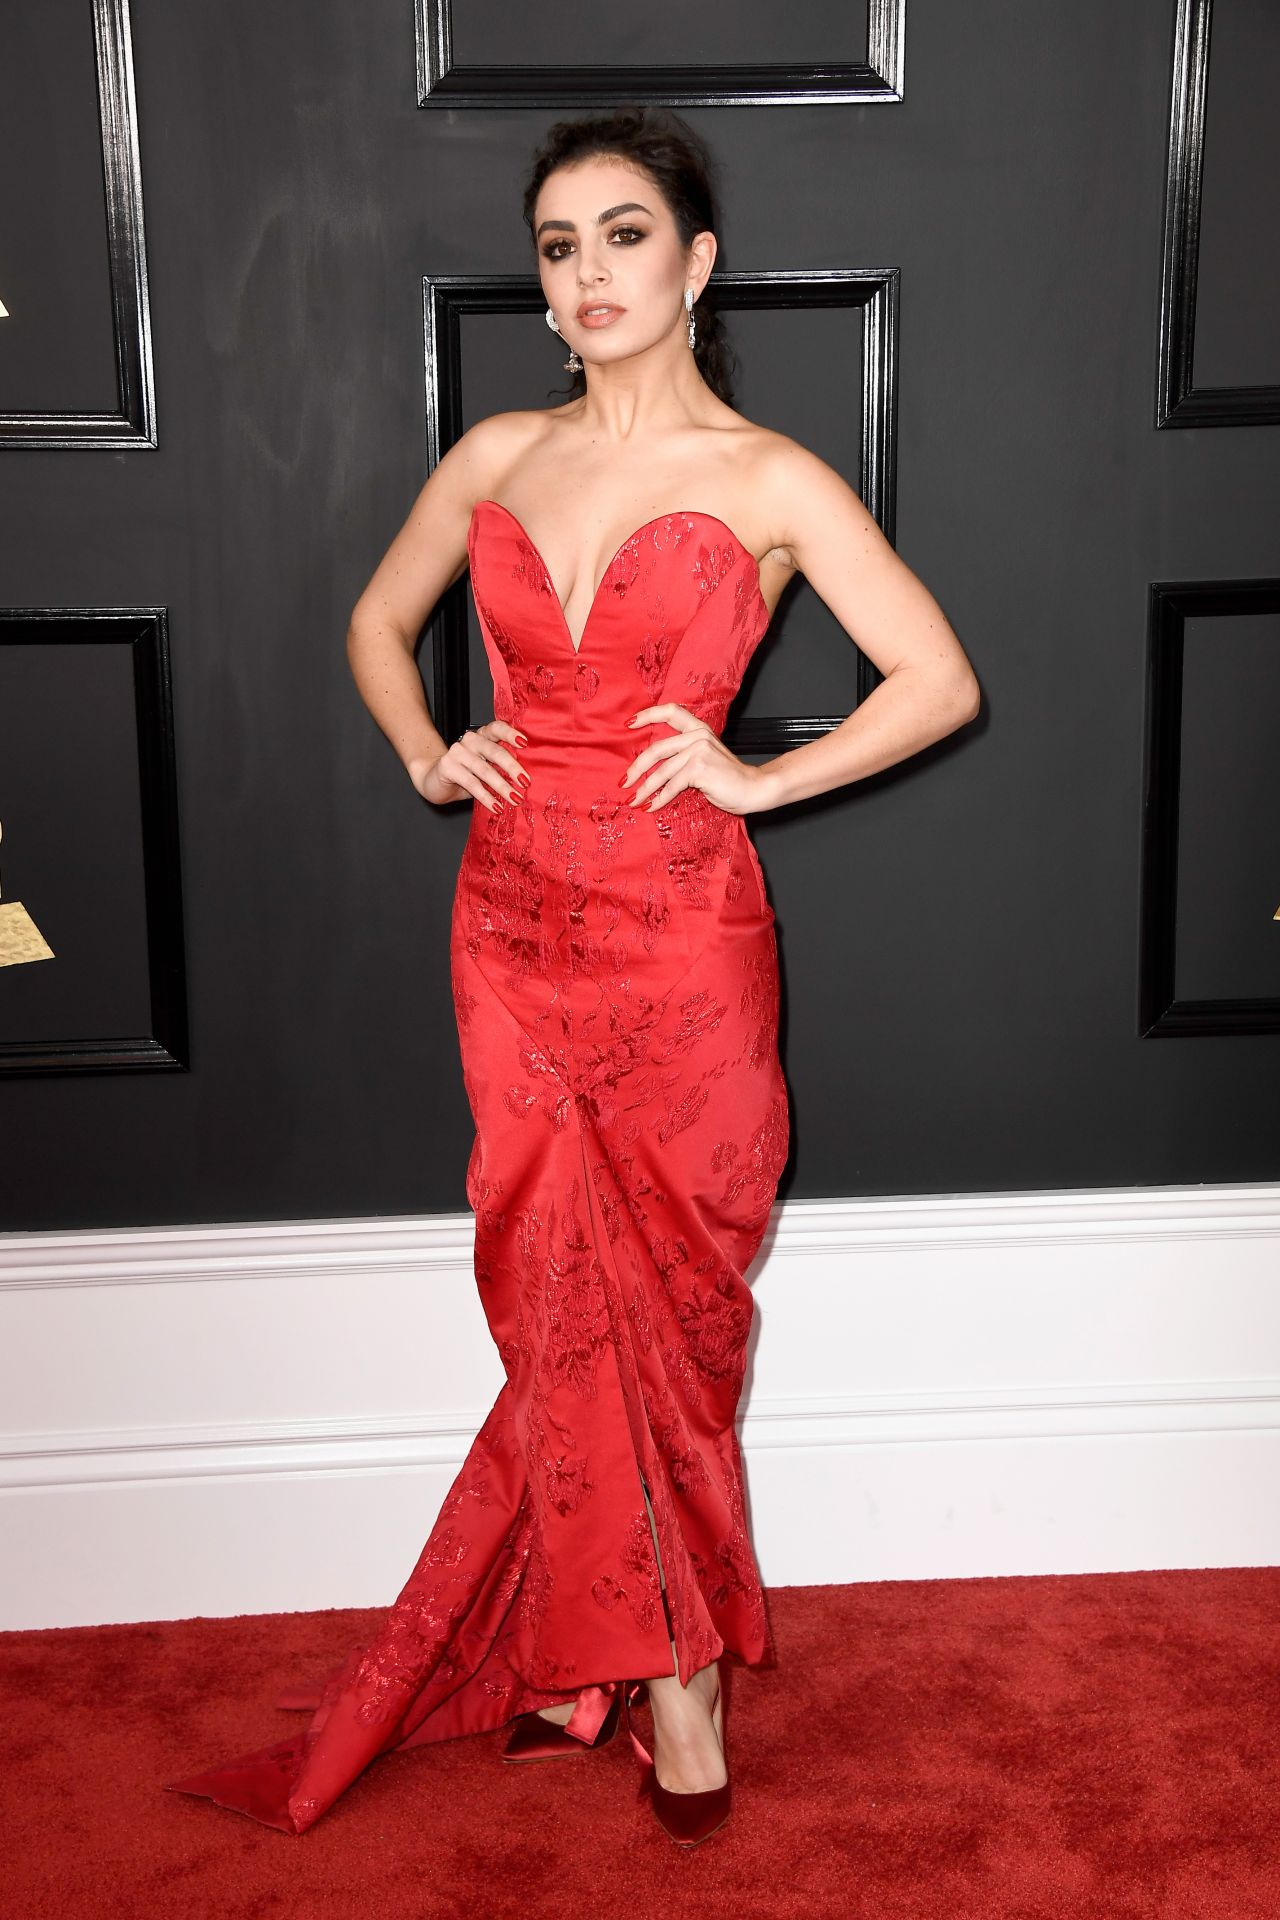 Demi Lovato on Red Carpet - GRAMMY Awards in Los Angeles 2